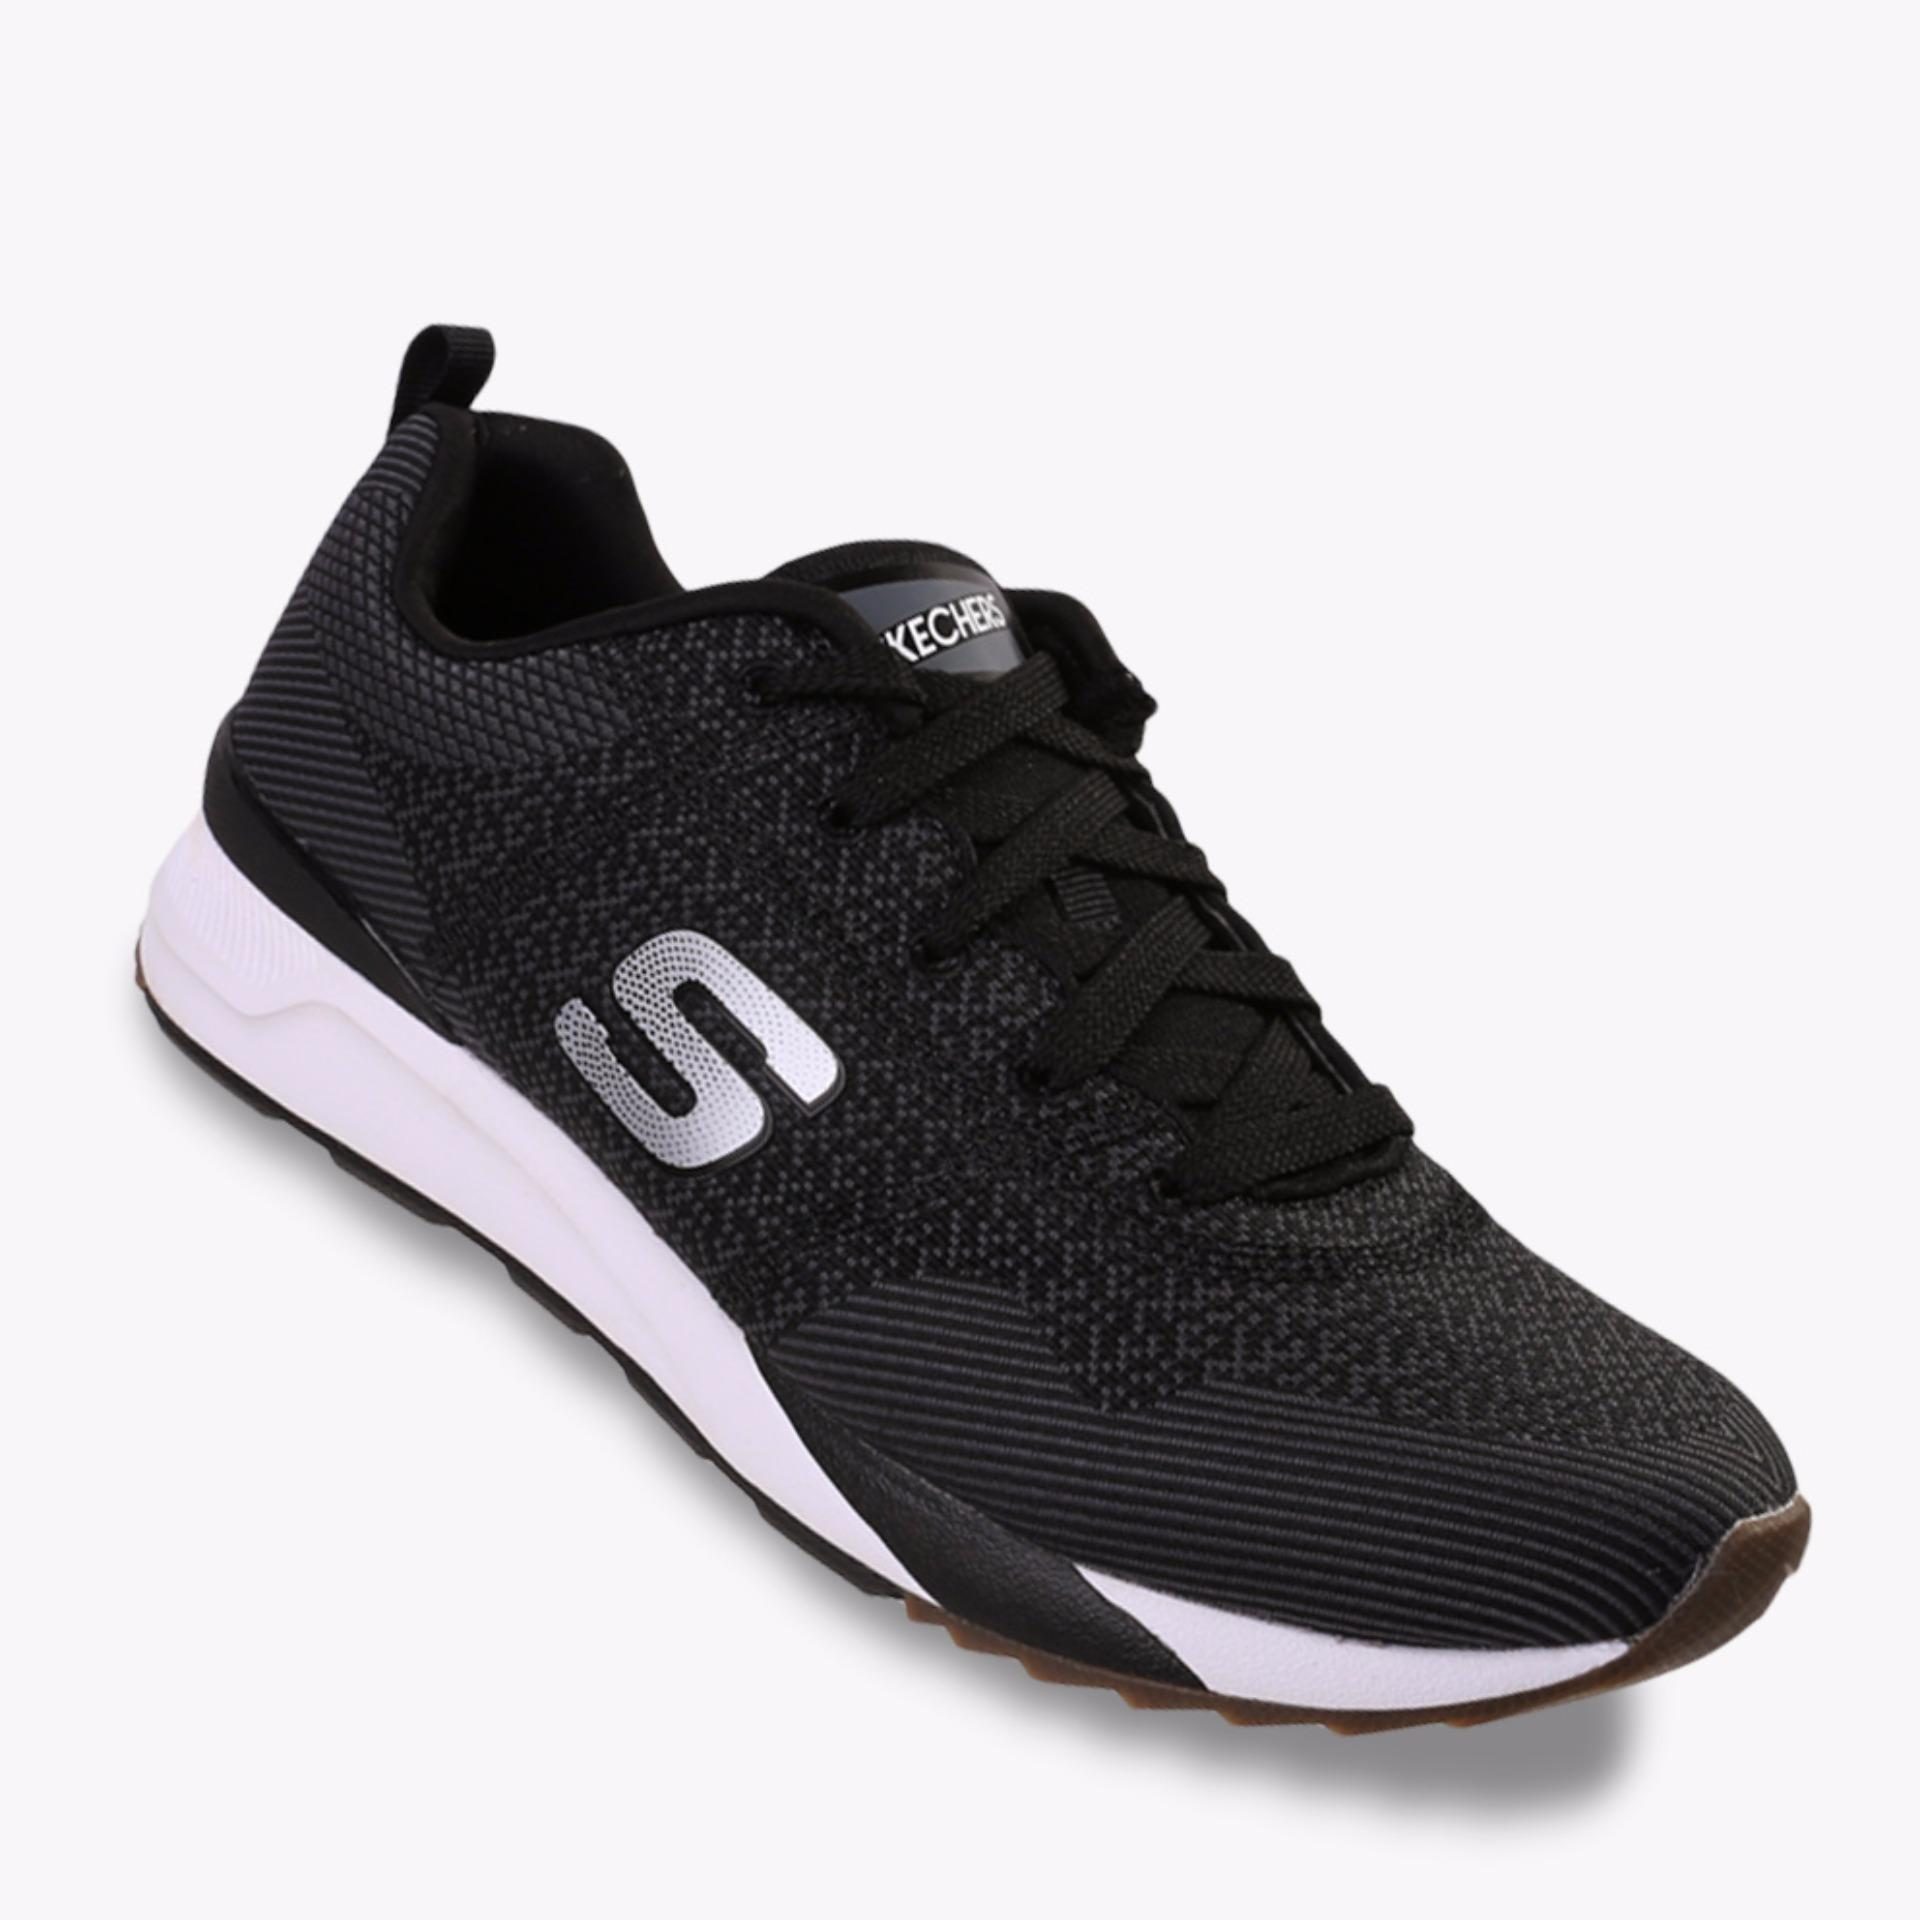 Perbandingan Harga Skechers Og 90 Cozine Men S Sneakers Shoes Hitam Skechers Di Indonesia